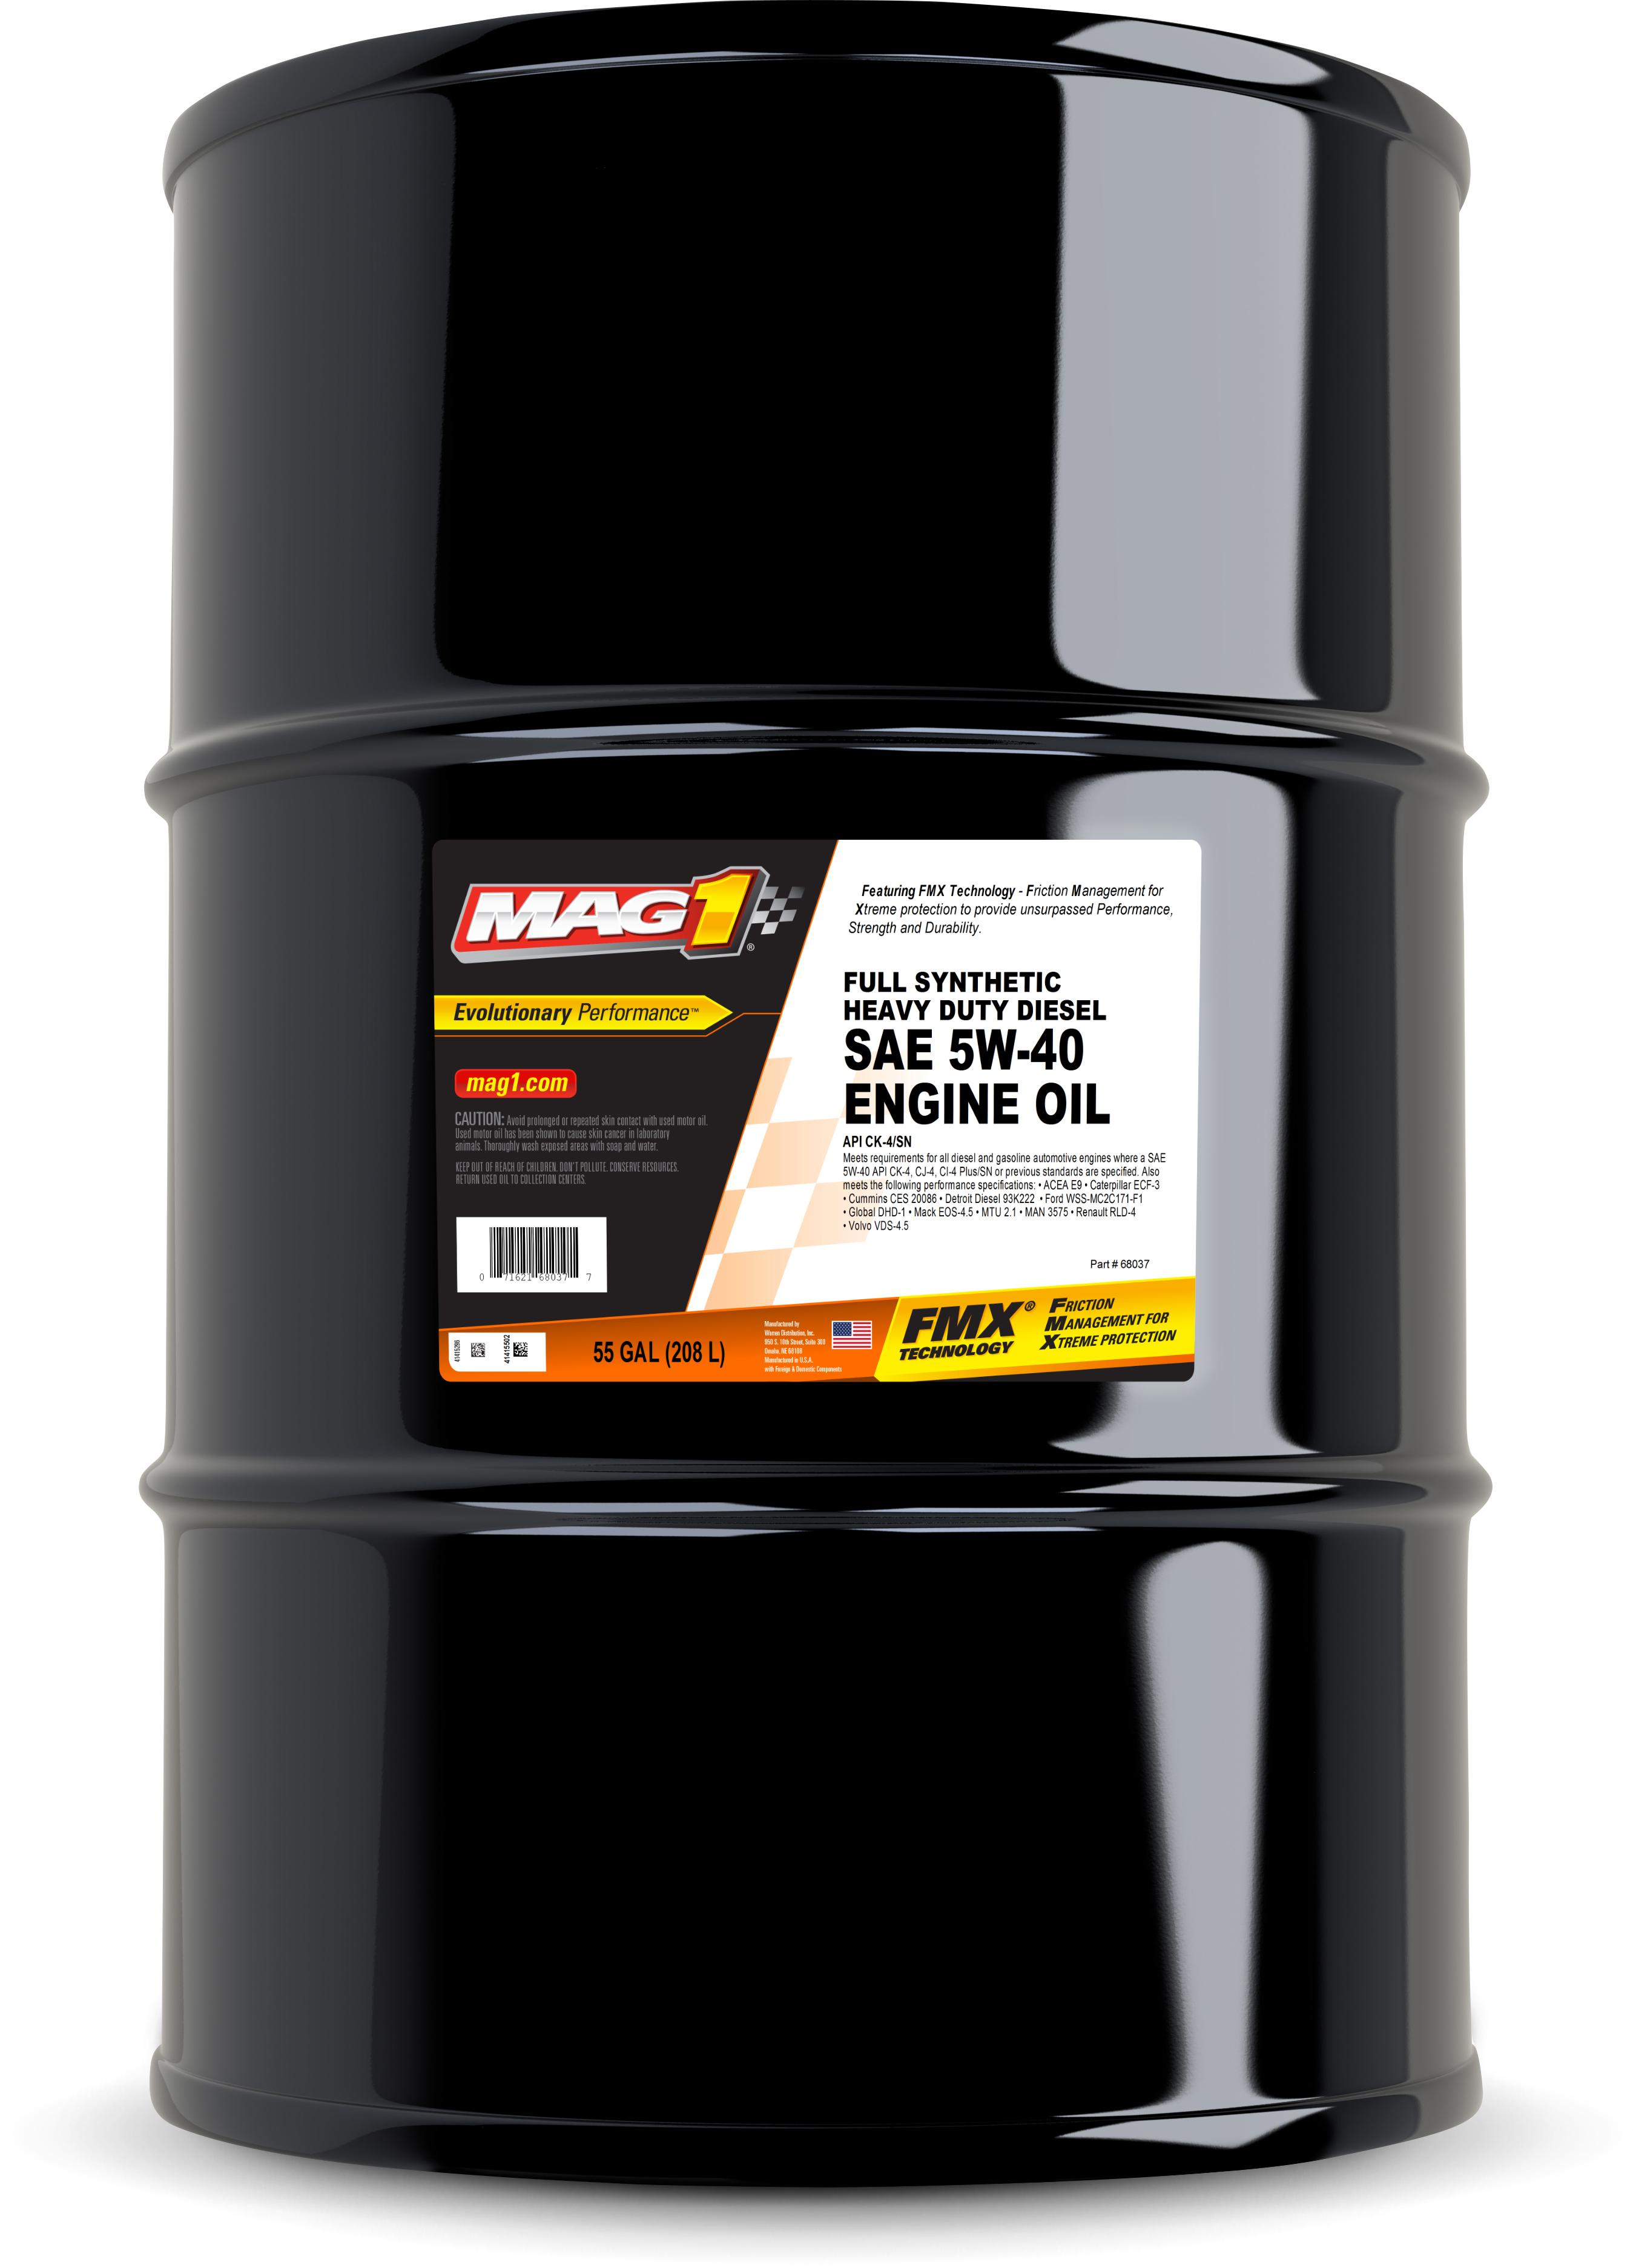 Lubricants - Gear Oils - Greases - MAG1 - FULL SYNTHETIC LUBRICANTS